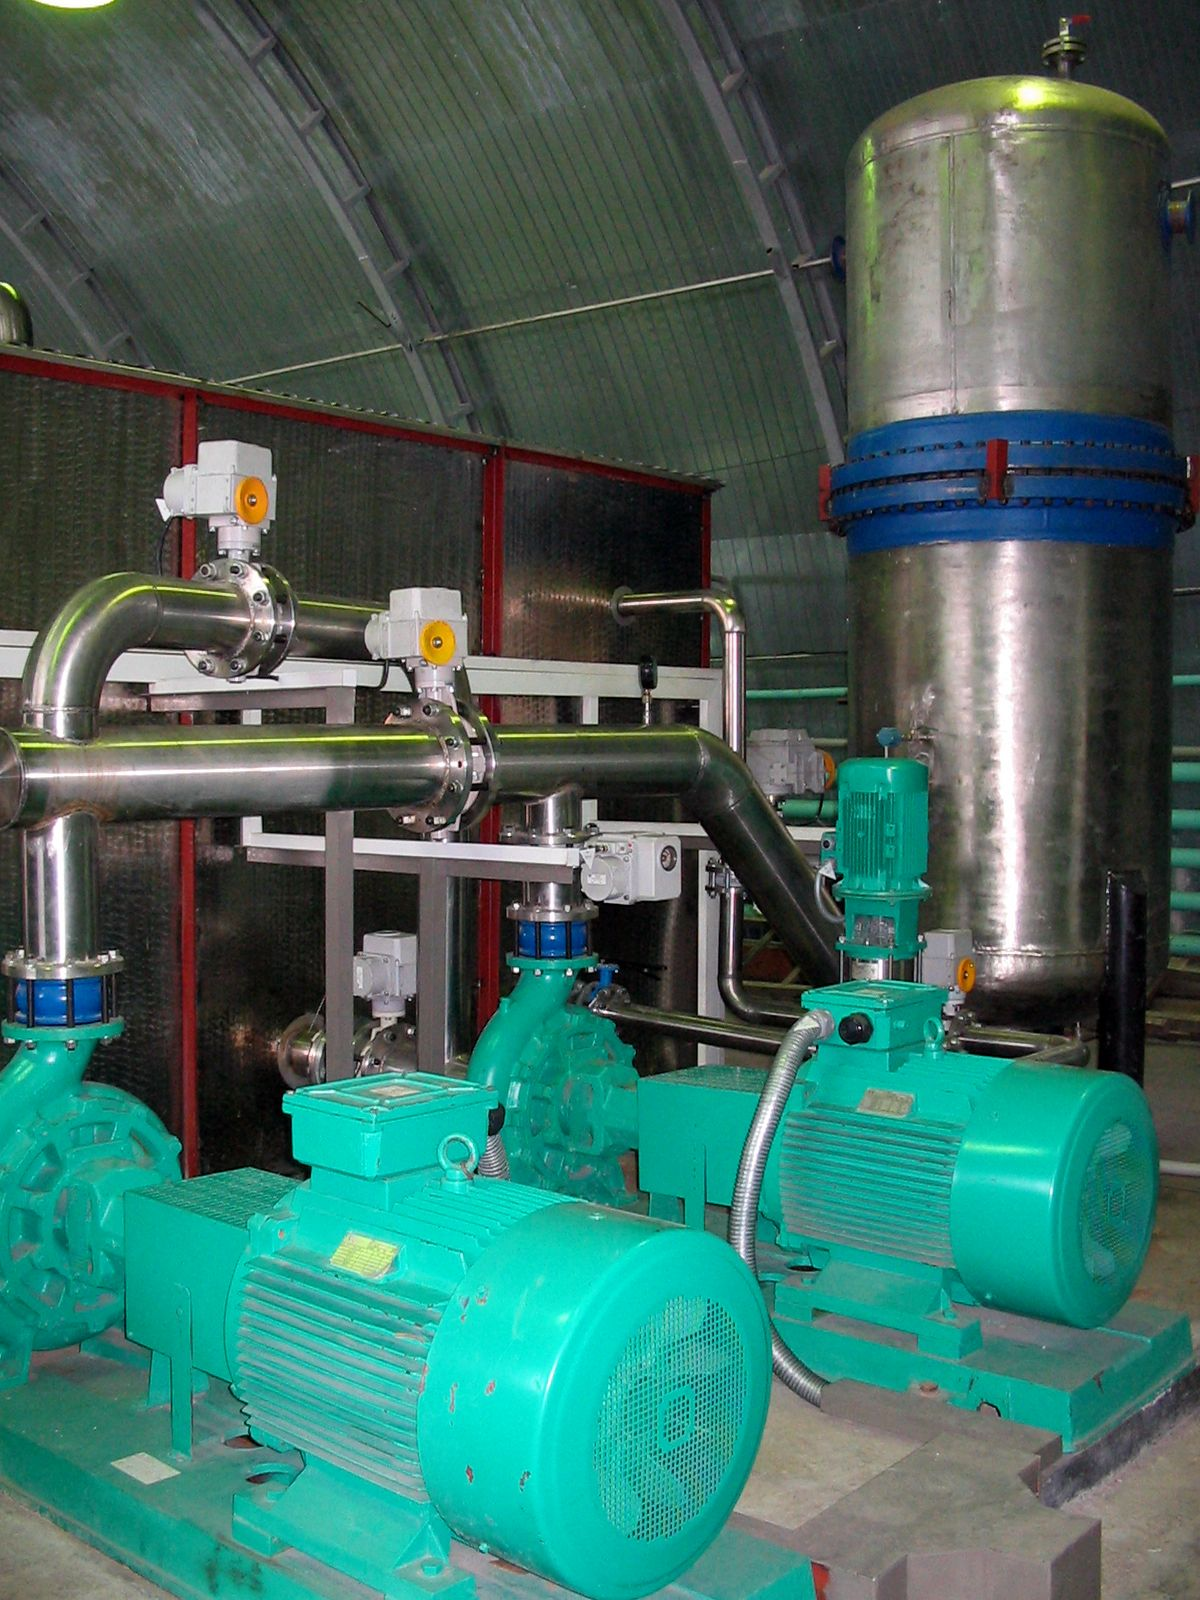 Flow measurement, flow measuring, flow metering, calibration test stand, volumetric flowmeter, mass flowmeter, Promass X, Micro Motion CMFHC, Trio-Mass, Optimass 2000, Rotamass, reference meter, thermal mass, multiphase, coriolis, mass electromagnetic variable area ultrasonic vortex flowmeter, verification calibration test testing flowmeter, flowmeter calibration standards, weighing method, measurement liquid flow, liquid flow measurement, meter calibration, Metrology Systems EC, Endress+Hauser, Grundfos, Wilo, Siemens,流量測量,流量計校驗,校驗流量計,測試流量計,質量流量,體積流量,流量测量,流量计校验,校验流量计,测试流量计,流量测量,质量流量,体積流量, 流量計標定,  手段流量计的校准,  设备流量计标定, 流量計のキャリブレーション,  IS0 4185, OIML R105, OIML R49, Flow Meter Calibration Test Bench, 流量表检定试验台, 유량계 교정 테스트 벤치